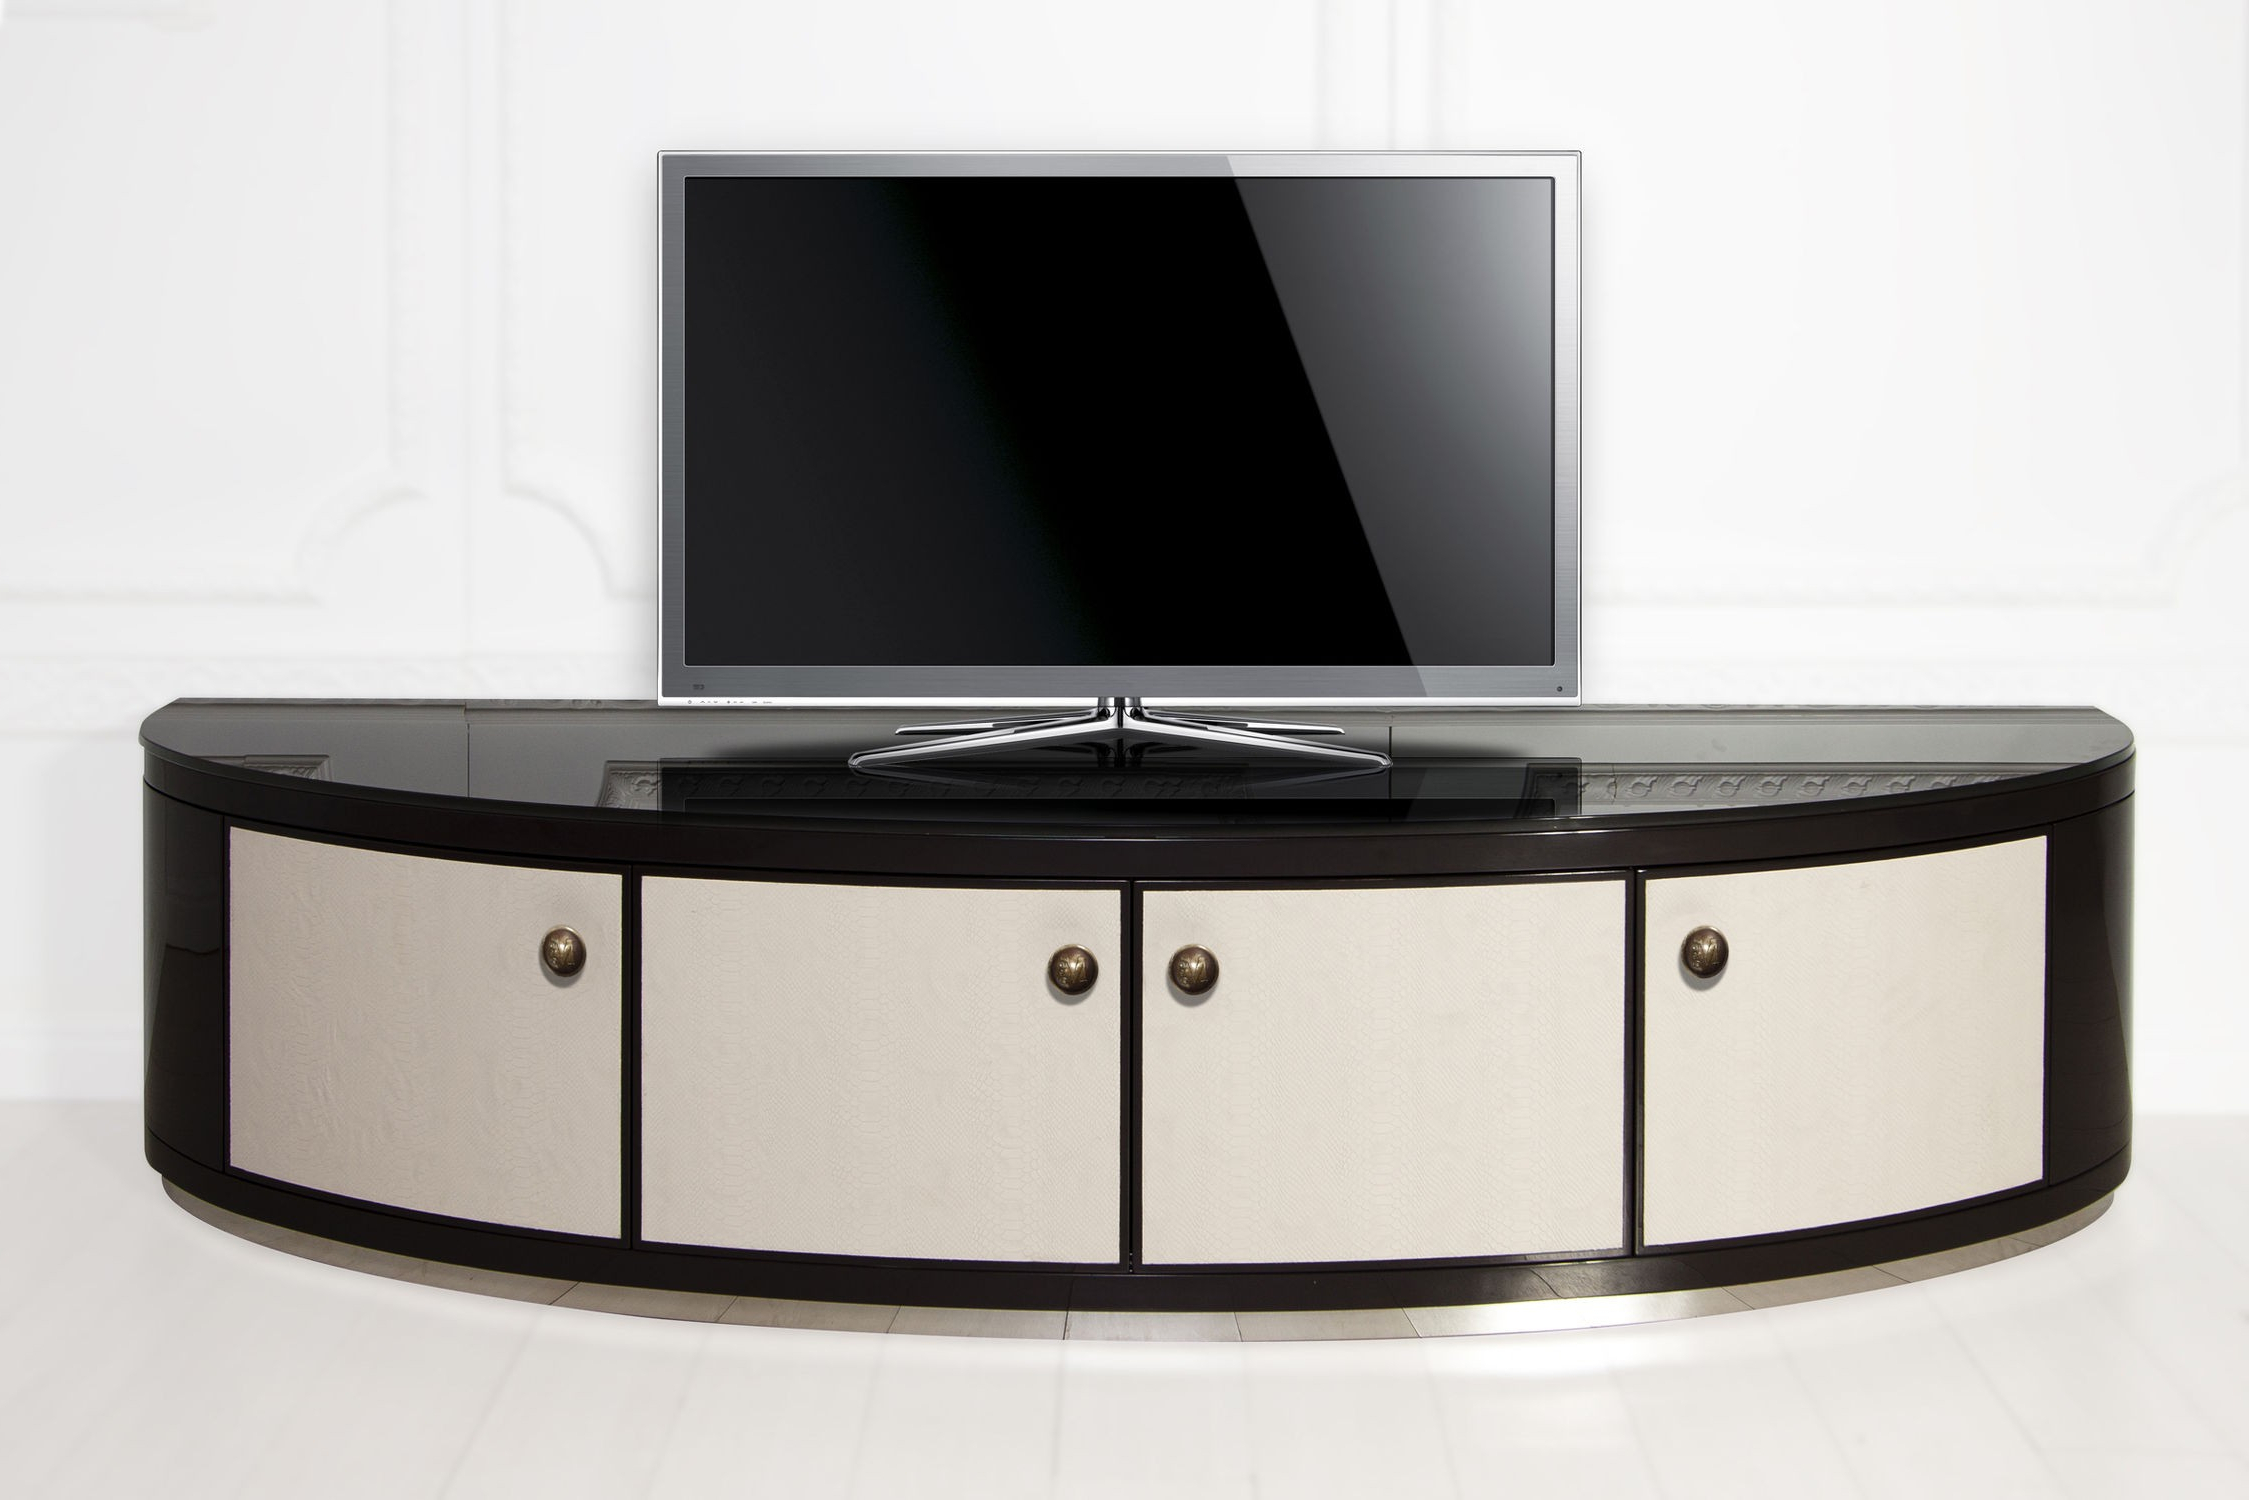 Lockable Tv Stands Regarding Well Liked Half Rounded Black Stained Wooden Tv Stand With White Door Panel And (Gallery 7 of 20)